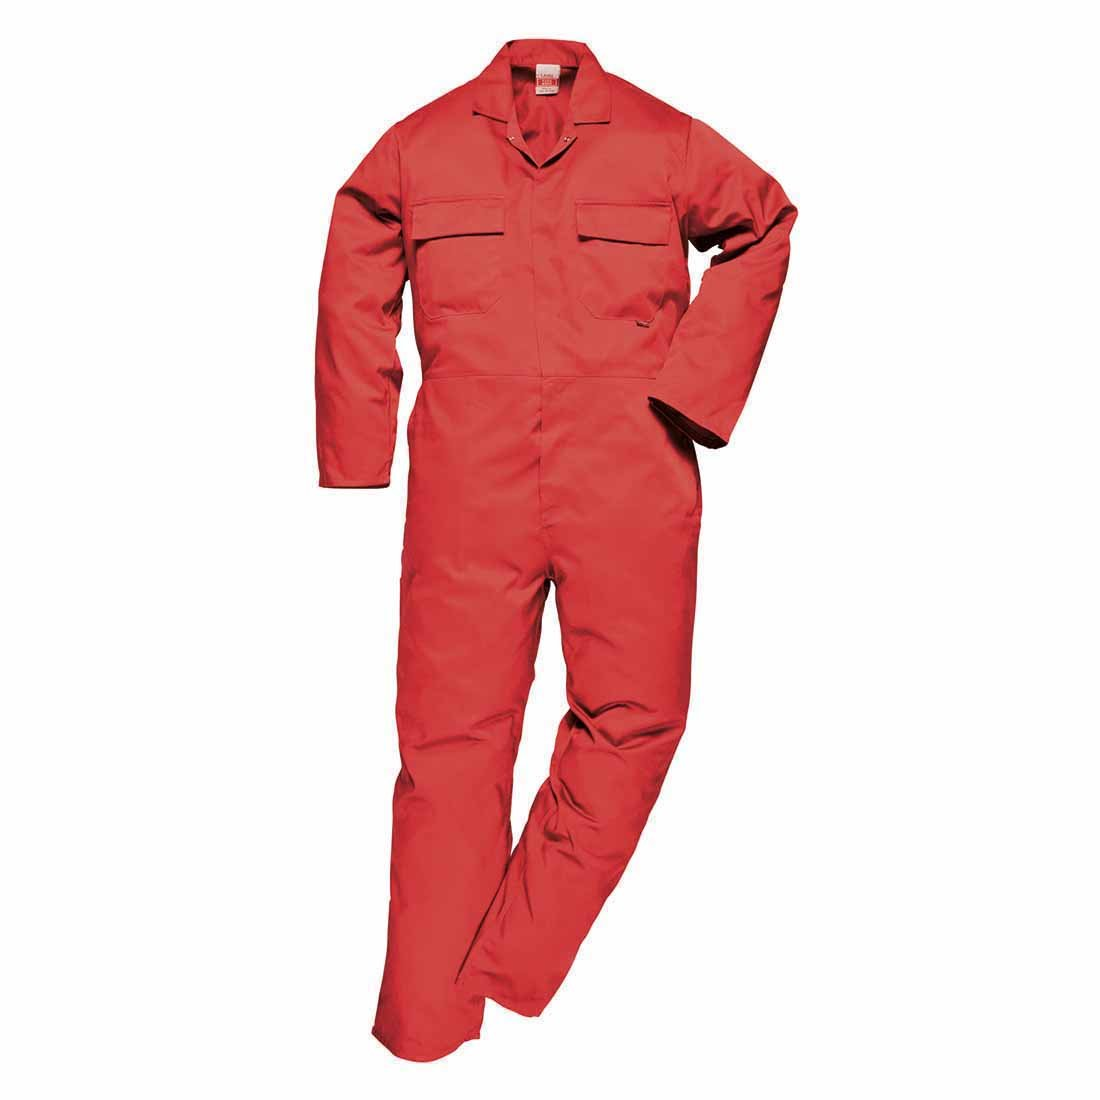 Portwest S999NARXS Euro Work Polycotton Coverall, Regular, Size: X-Small, Navy Portwest Clothing Ltd